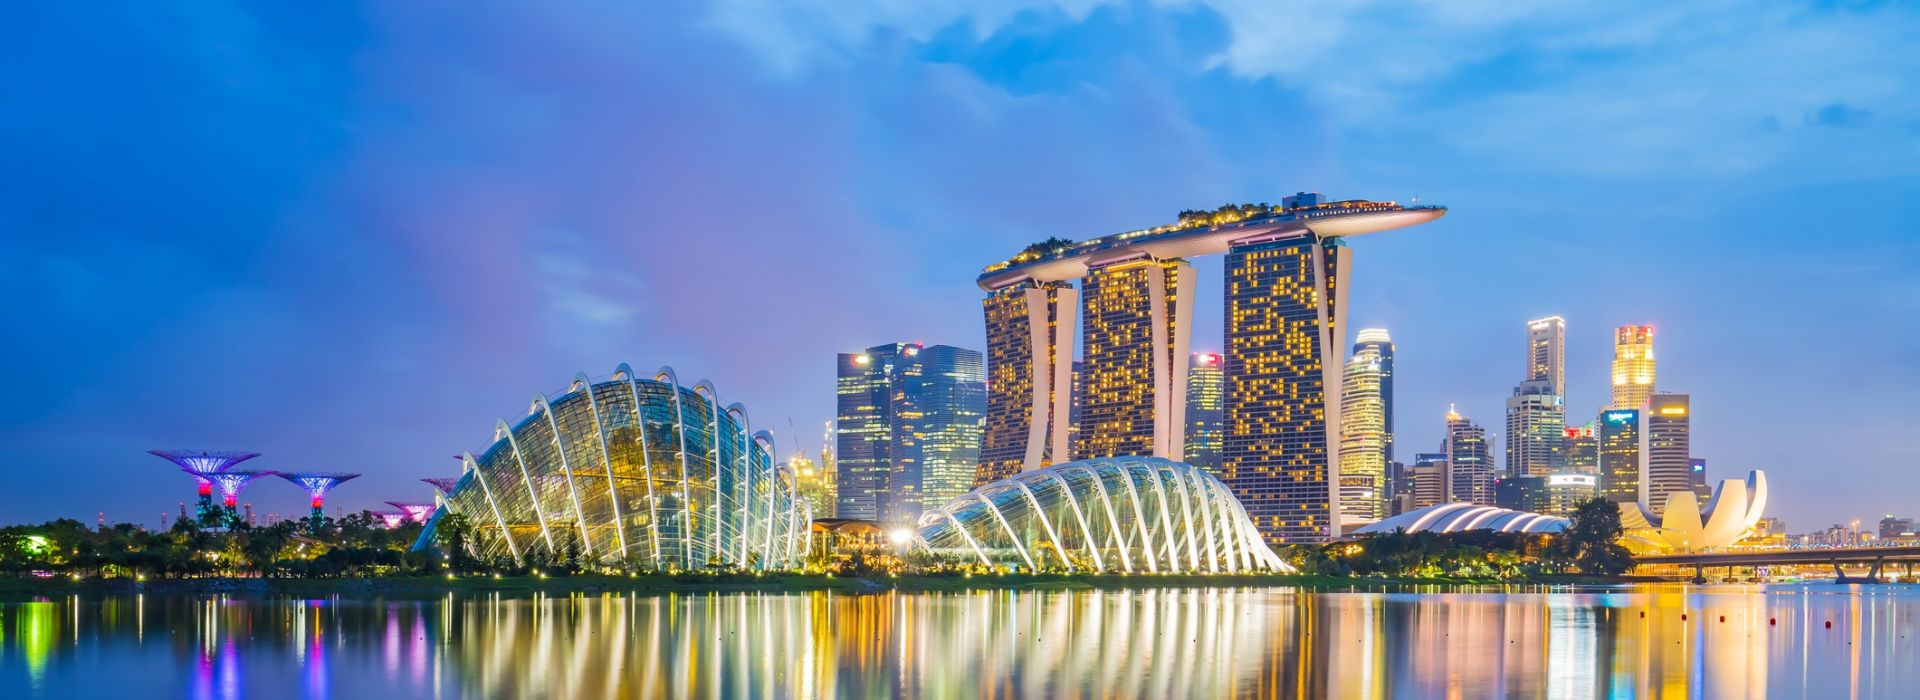 Travelling Singapore - Tours and Holiday Packages in Singapore